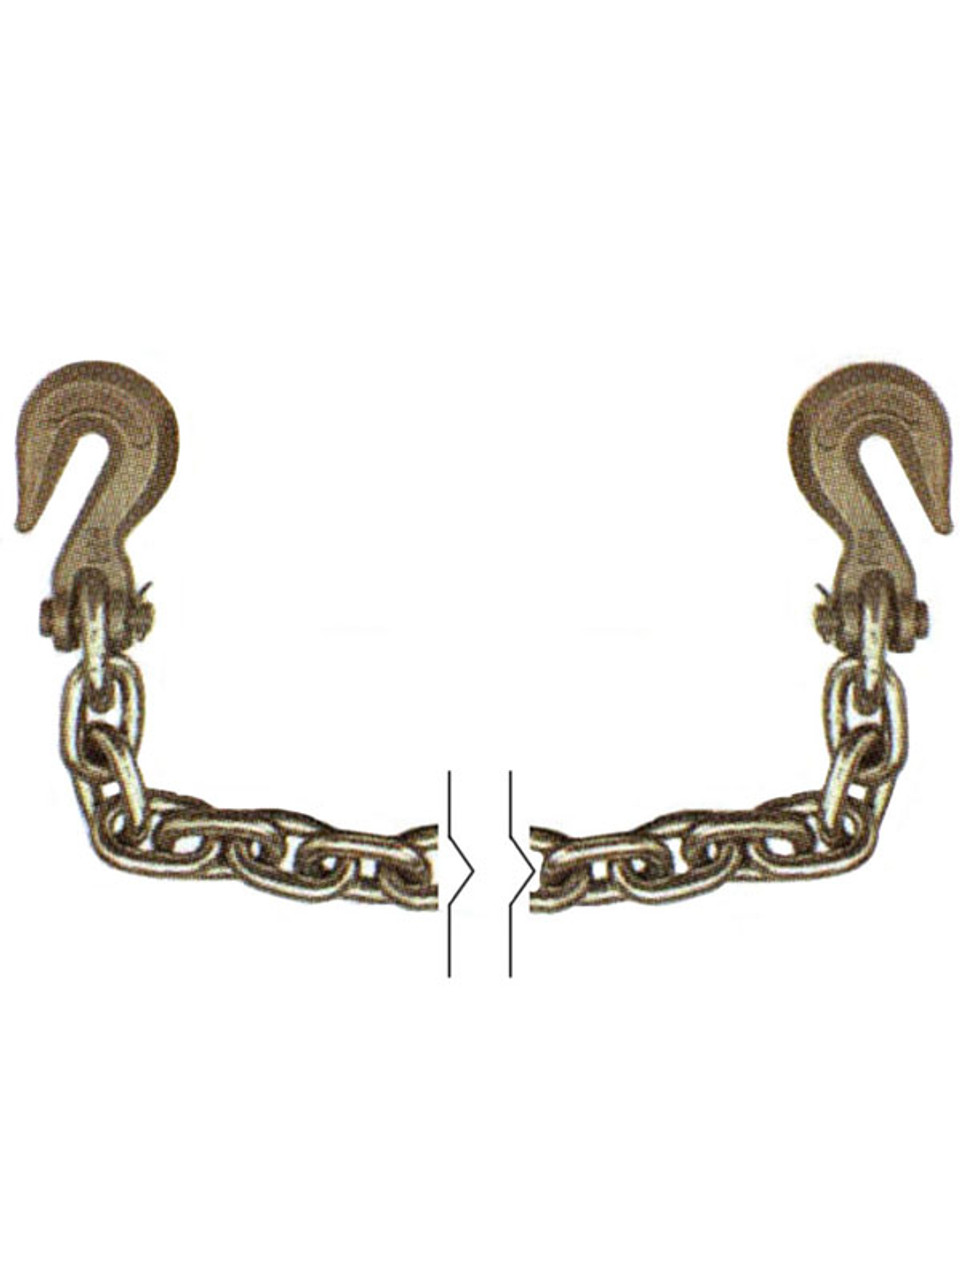 "G70516X20 --- 5/16"" Transport Chain Assembly with Clevis Grab Hooks on Both Ends - Grade 70"